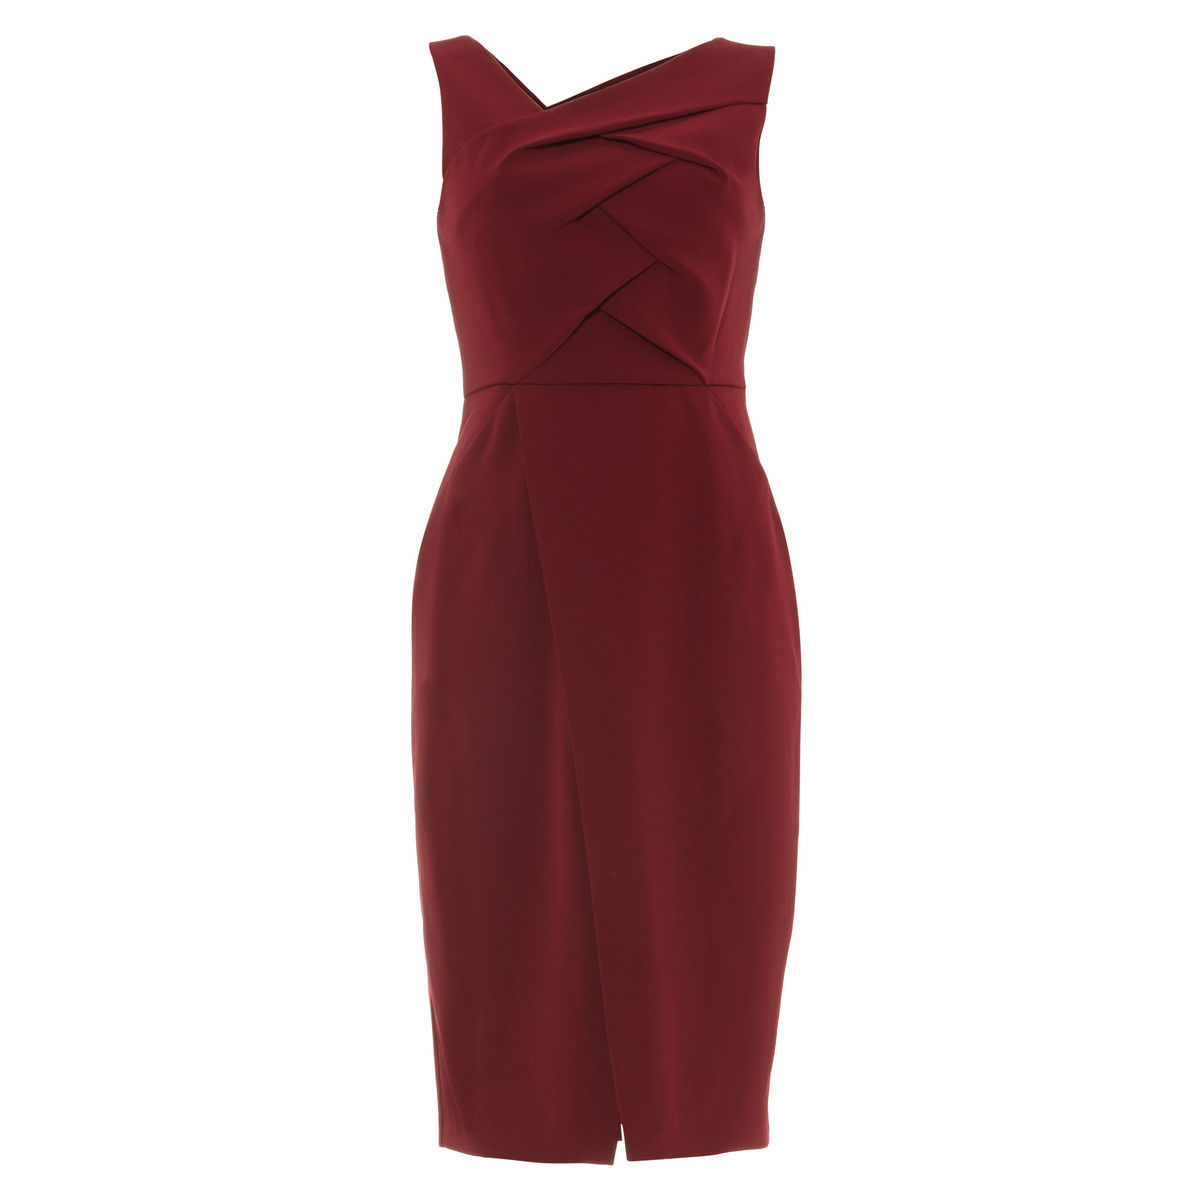 Phase Eight Damen Kleid Mara, Front mit Falten, bordeaux